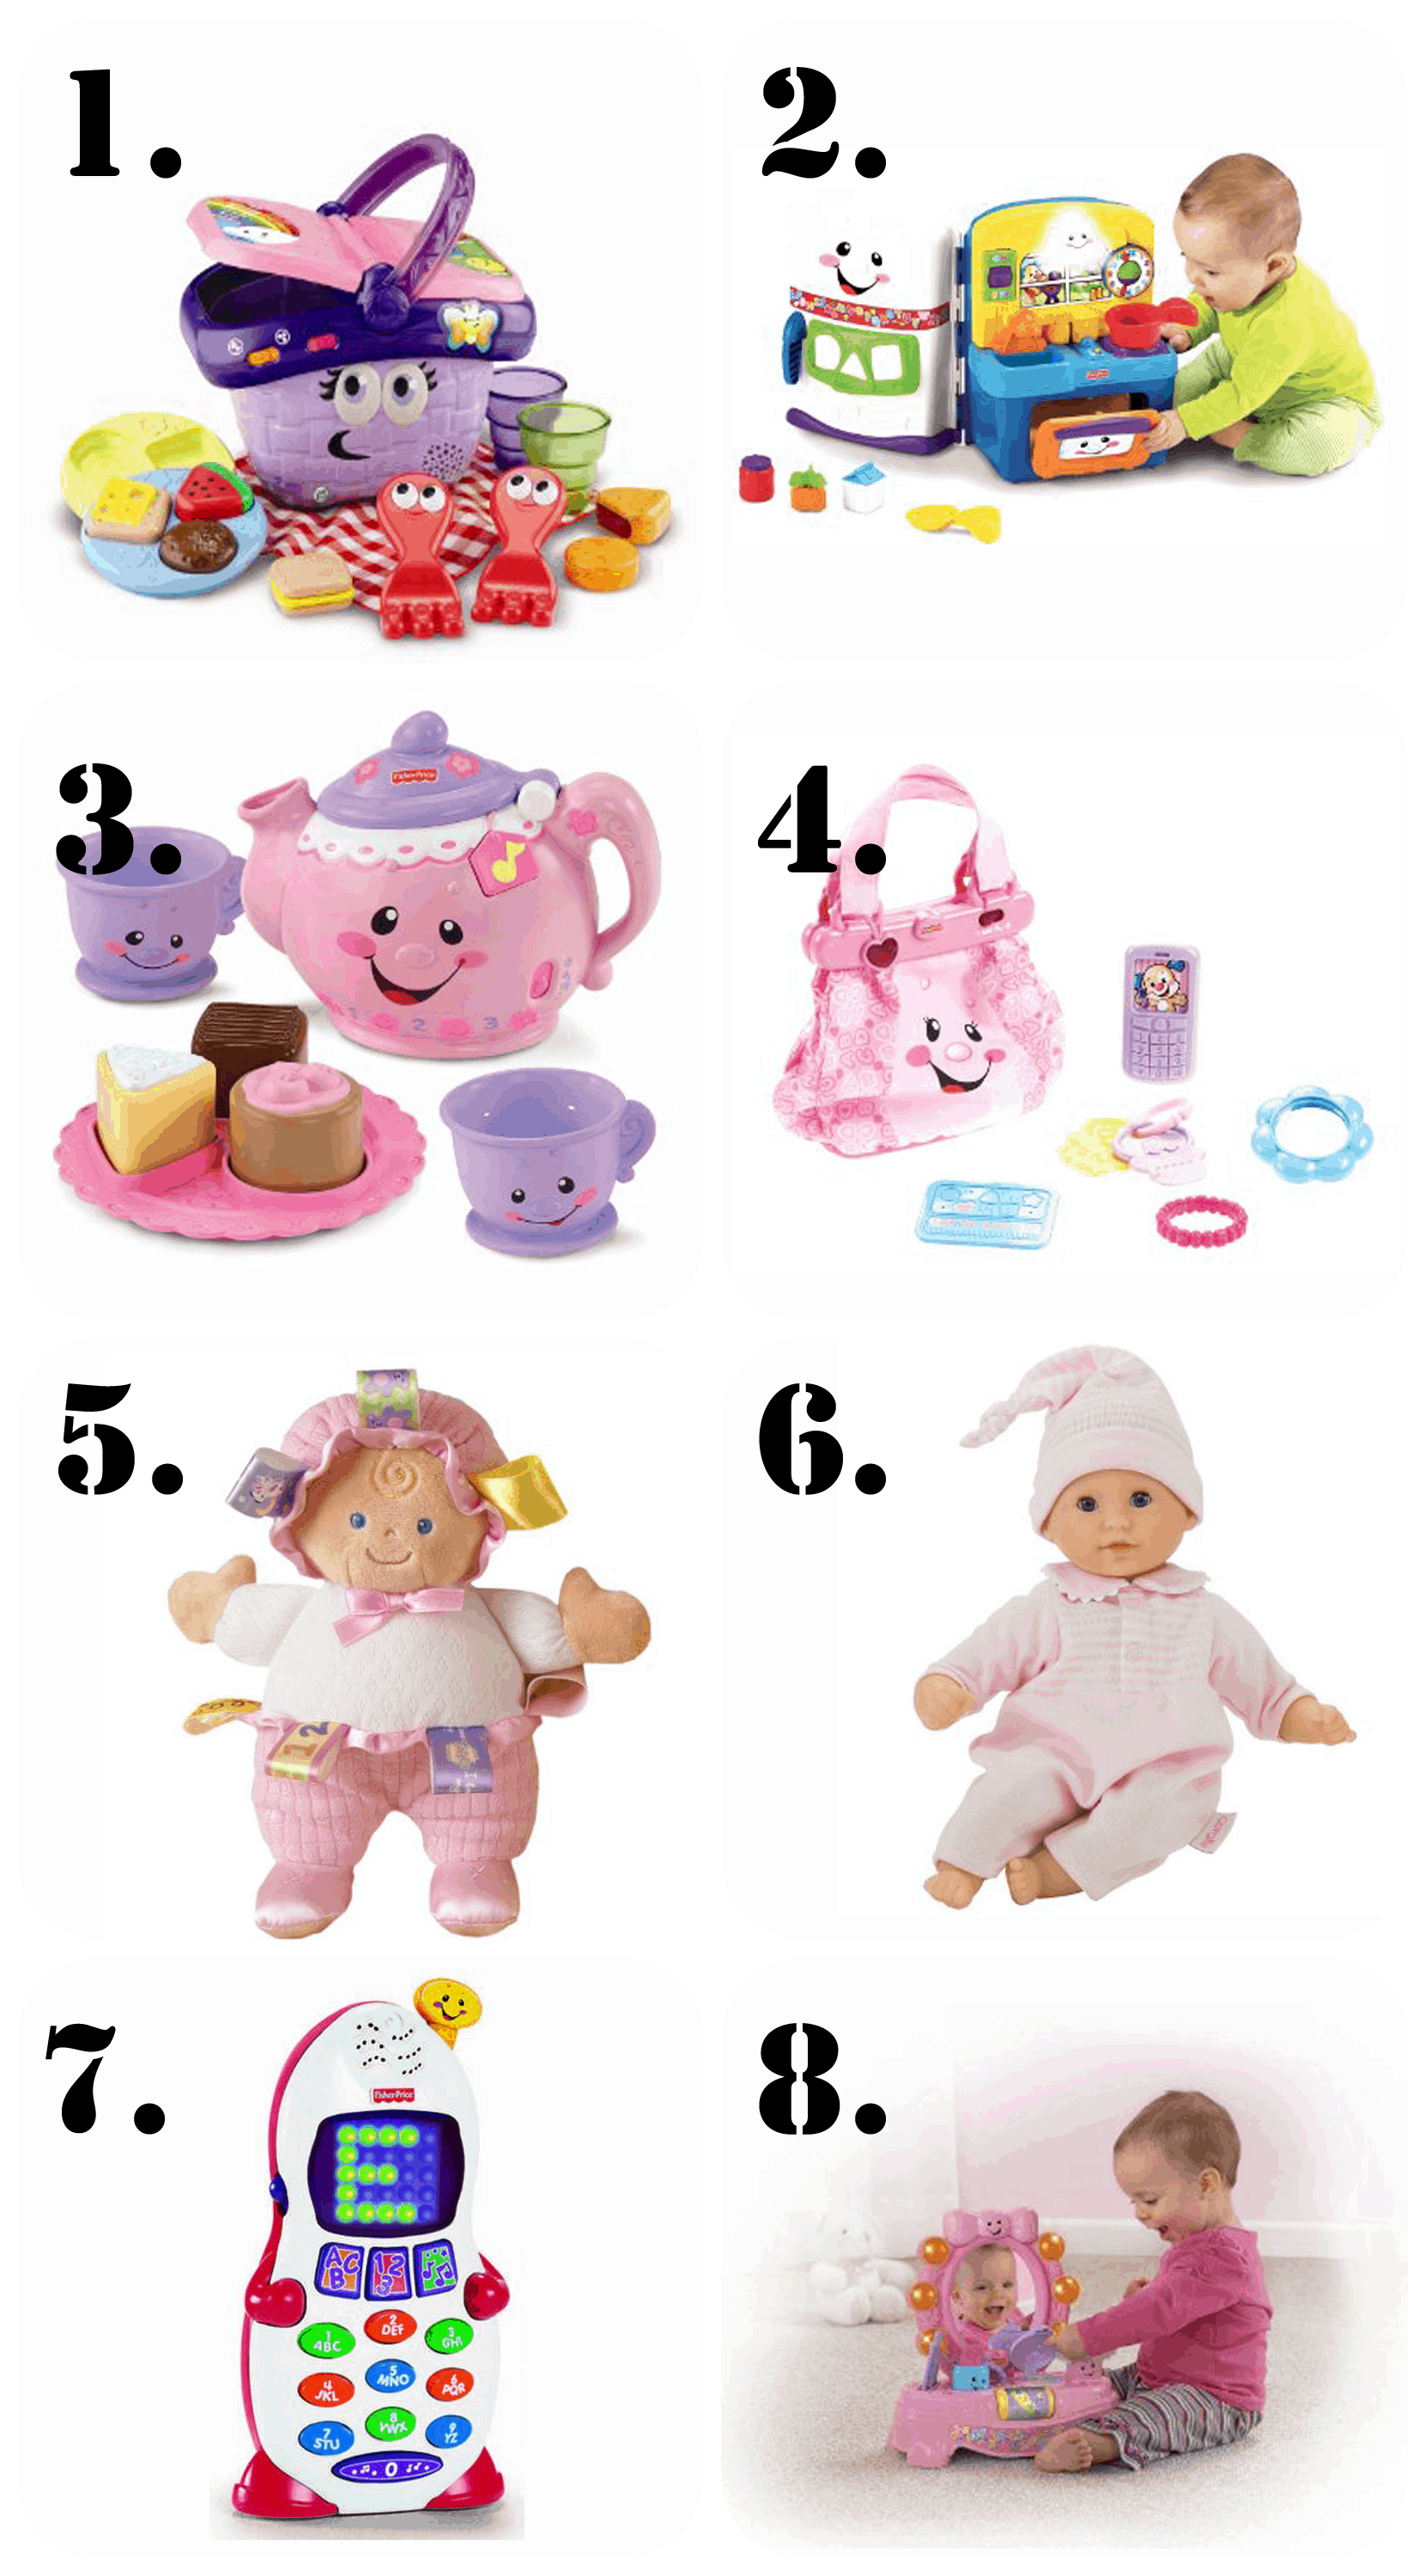 53ddc78ef19 BEST Gifts for a 1 Year Old Girl! • The Pinning Mama